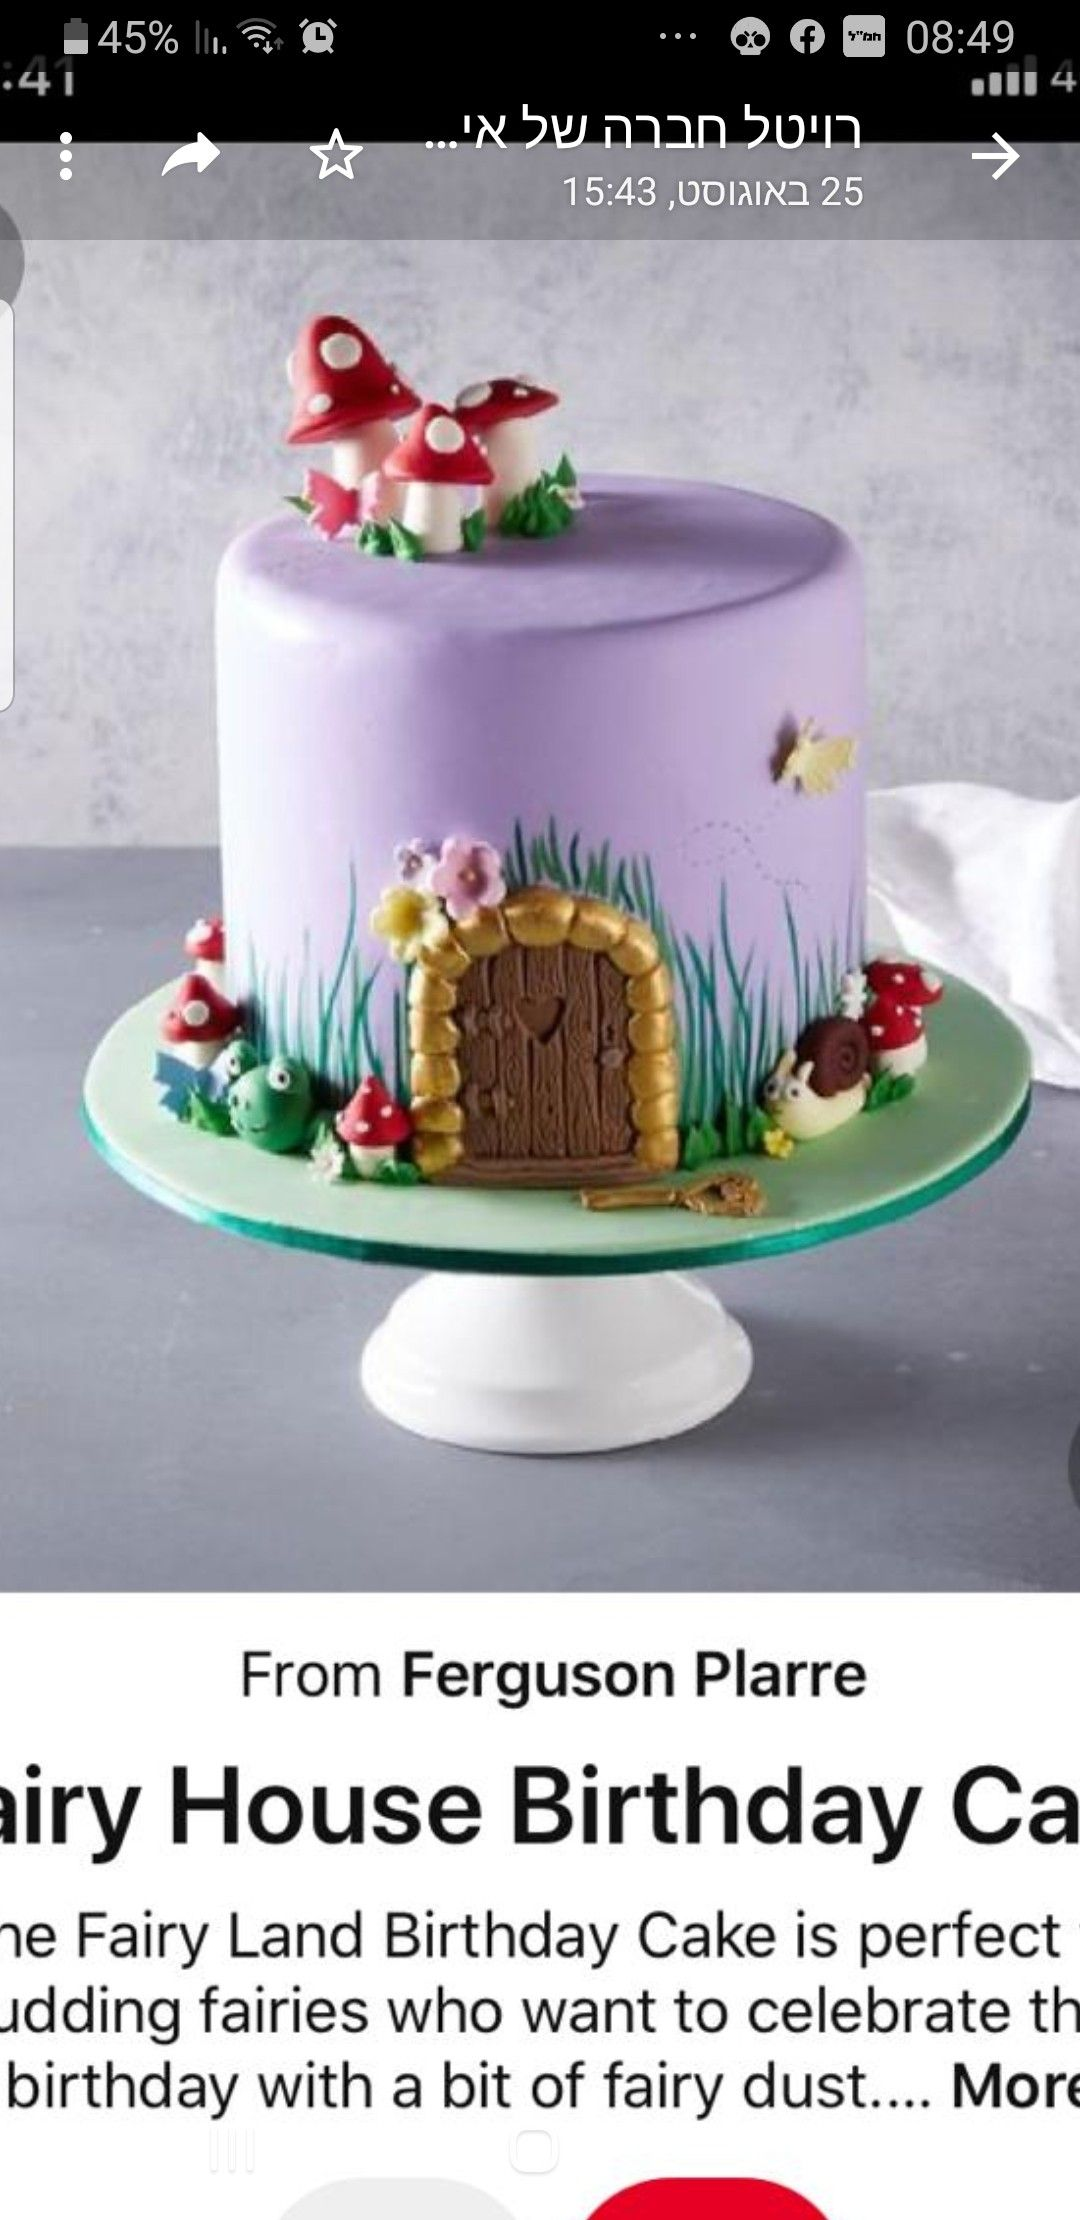 Pin by אתי אלבז on Number cakes in 2020 Number cakes